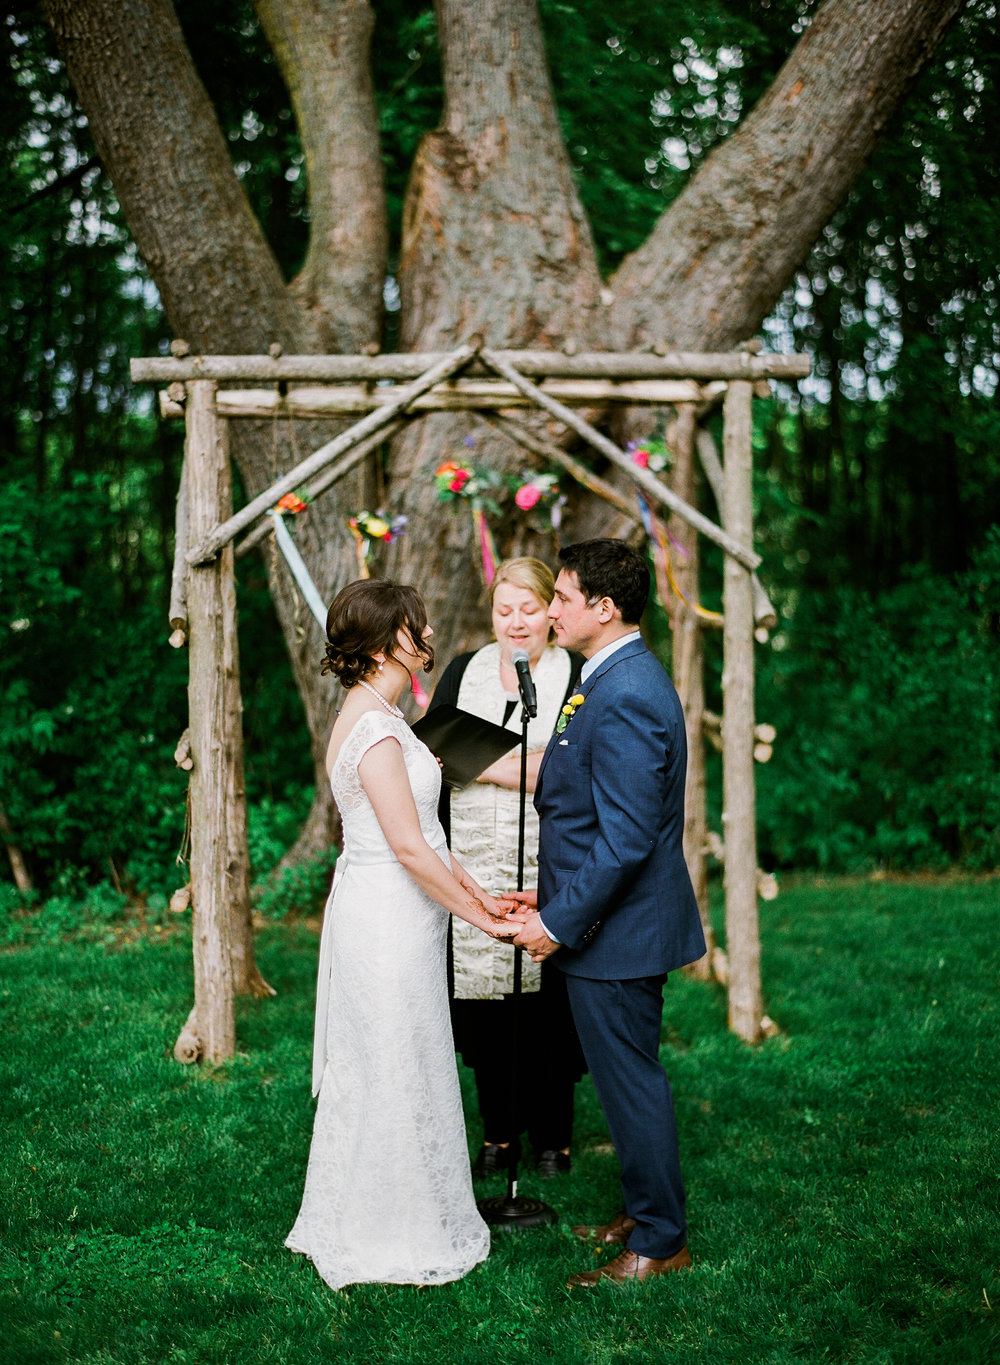 Outdoor Barn wedding in Northern MN at Bloom Lake Barn